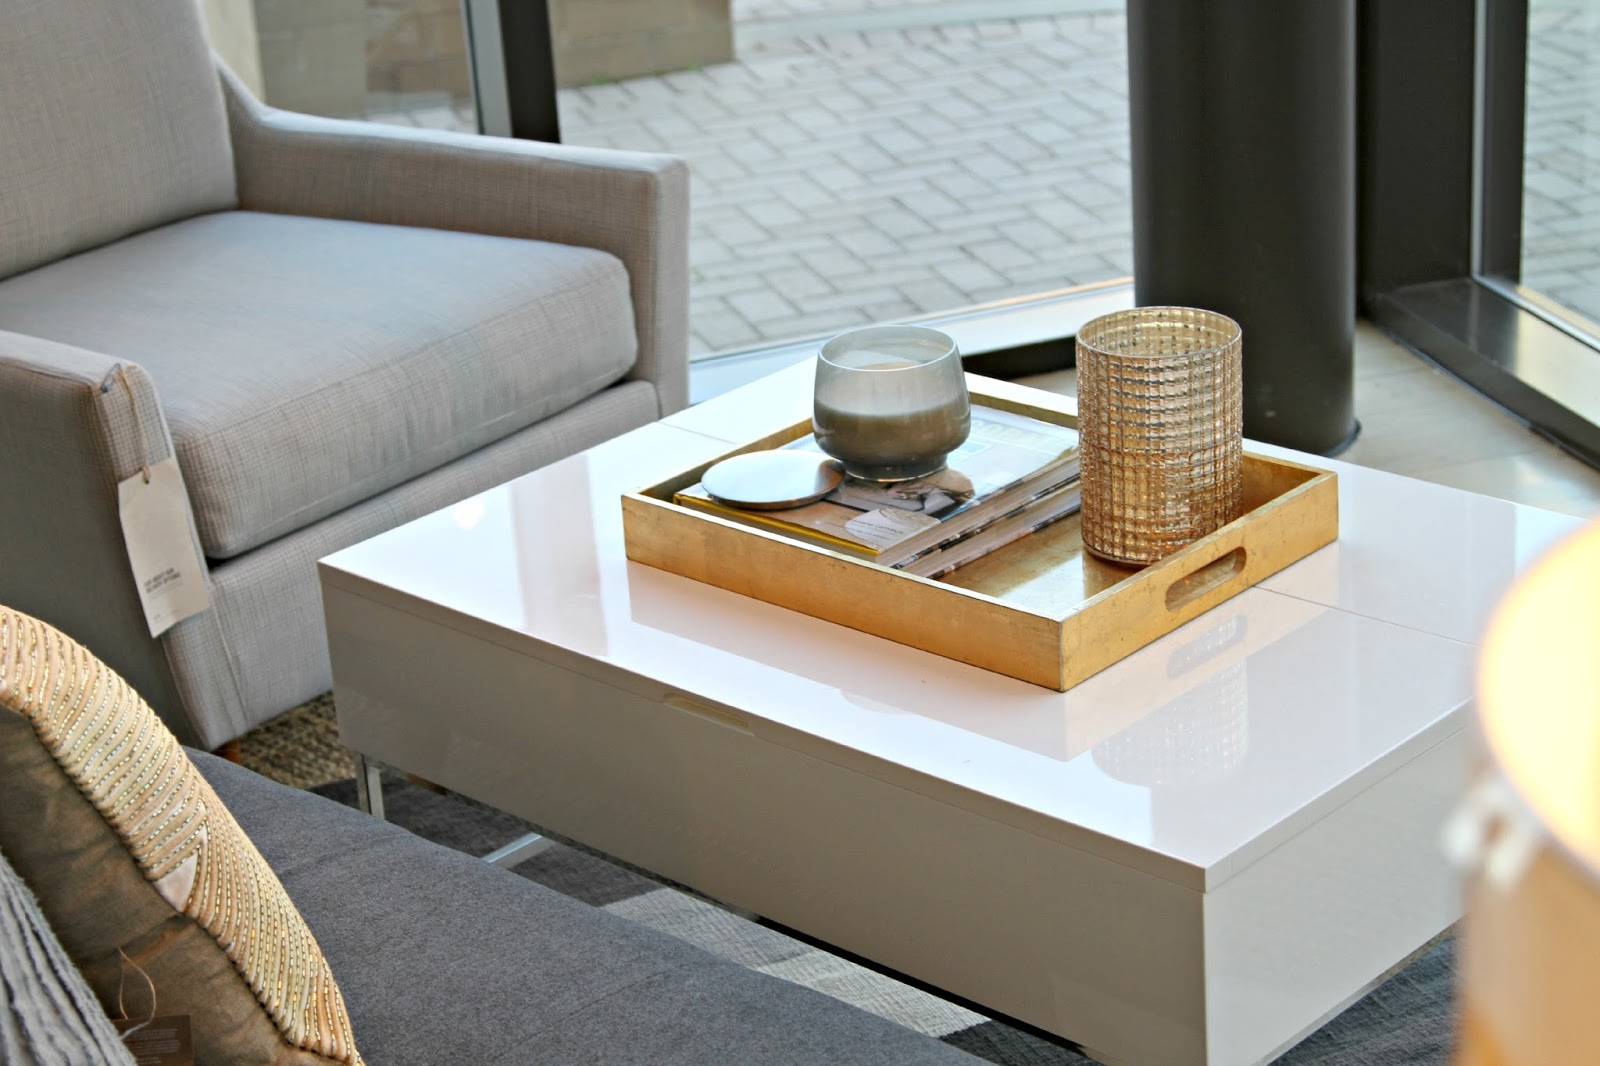 6 steps to styling a coffee table tray